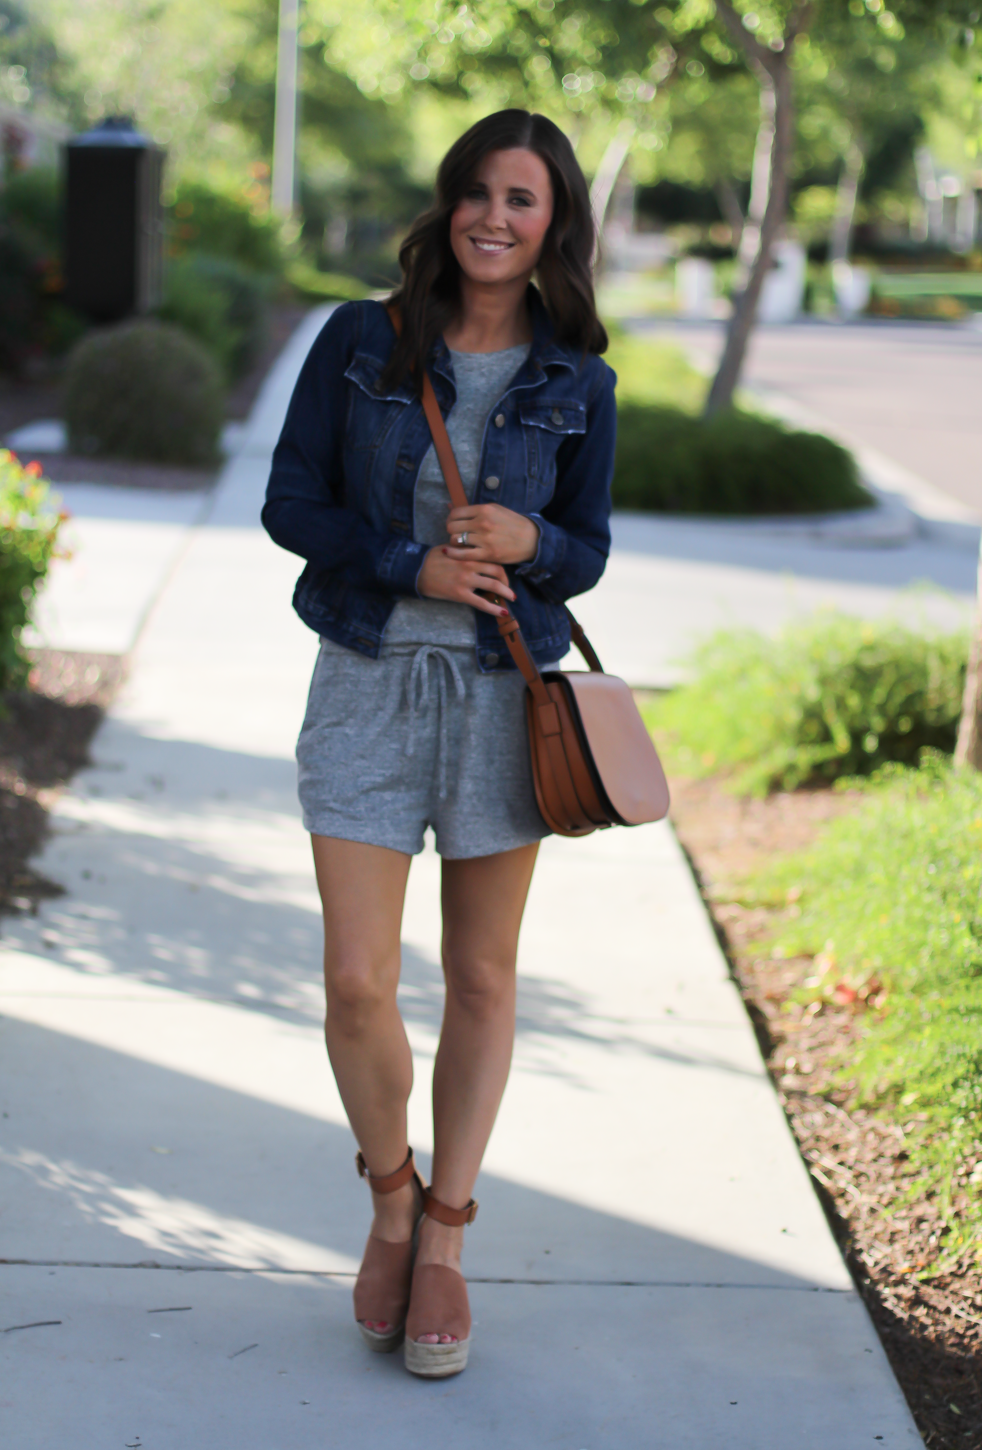 Grey Knit Denim Romper, Denim Jacket, Suede Wedge Sandals, Tan Leather Saddle Bag, Gap, Banana Republic, Chloe, Tory Burch 8